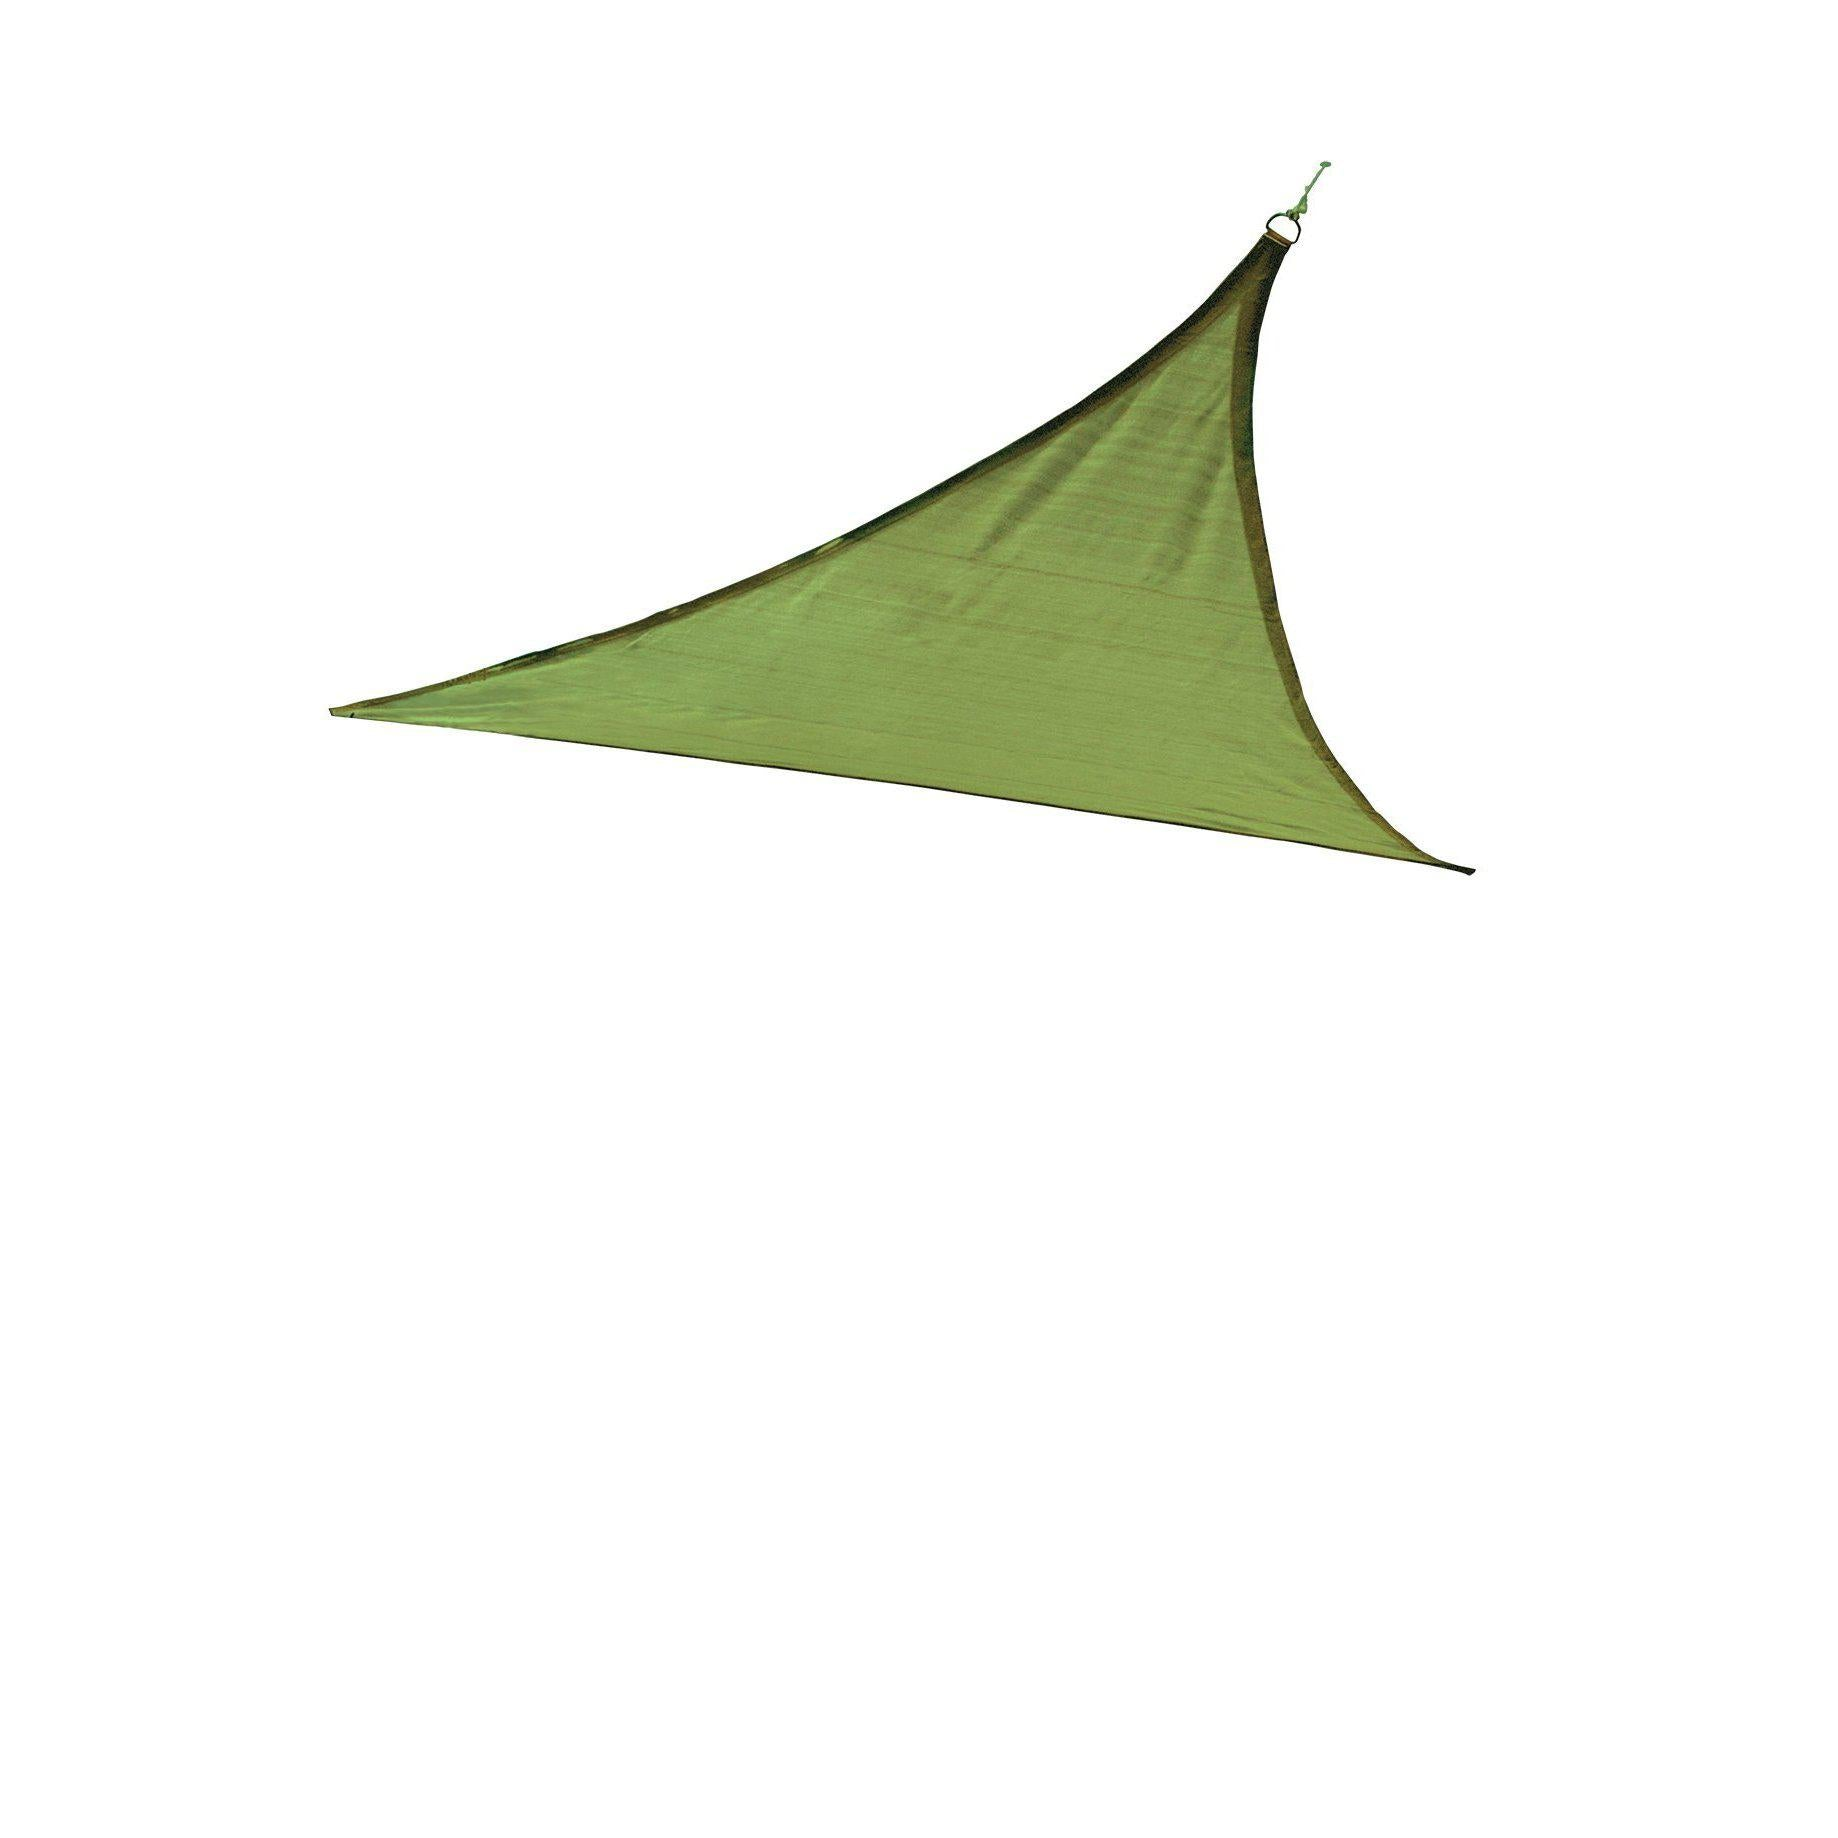 ShelterLogic Triangle Shade Sail, Lime Green, 12 x 12 x 12 ft.